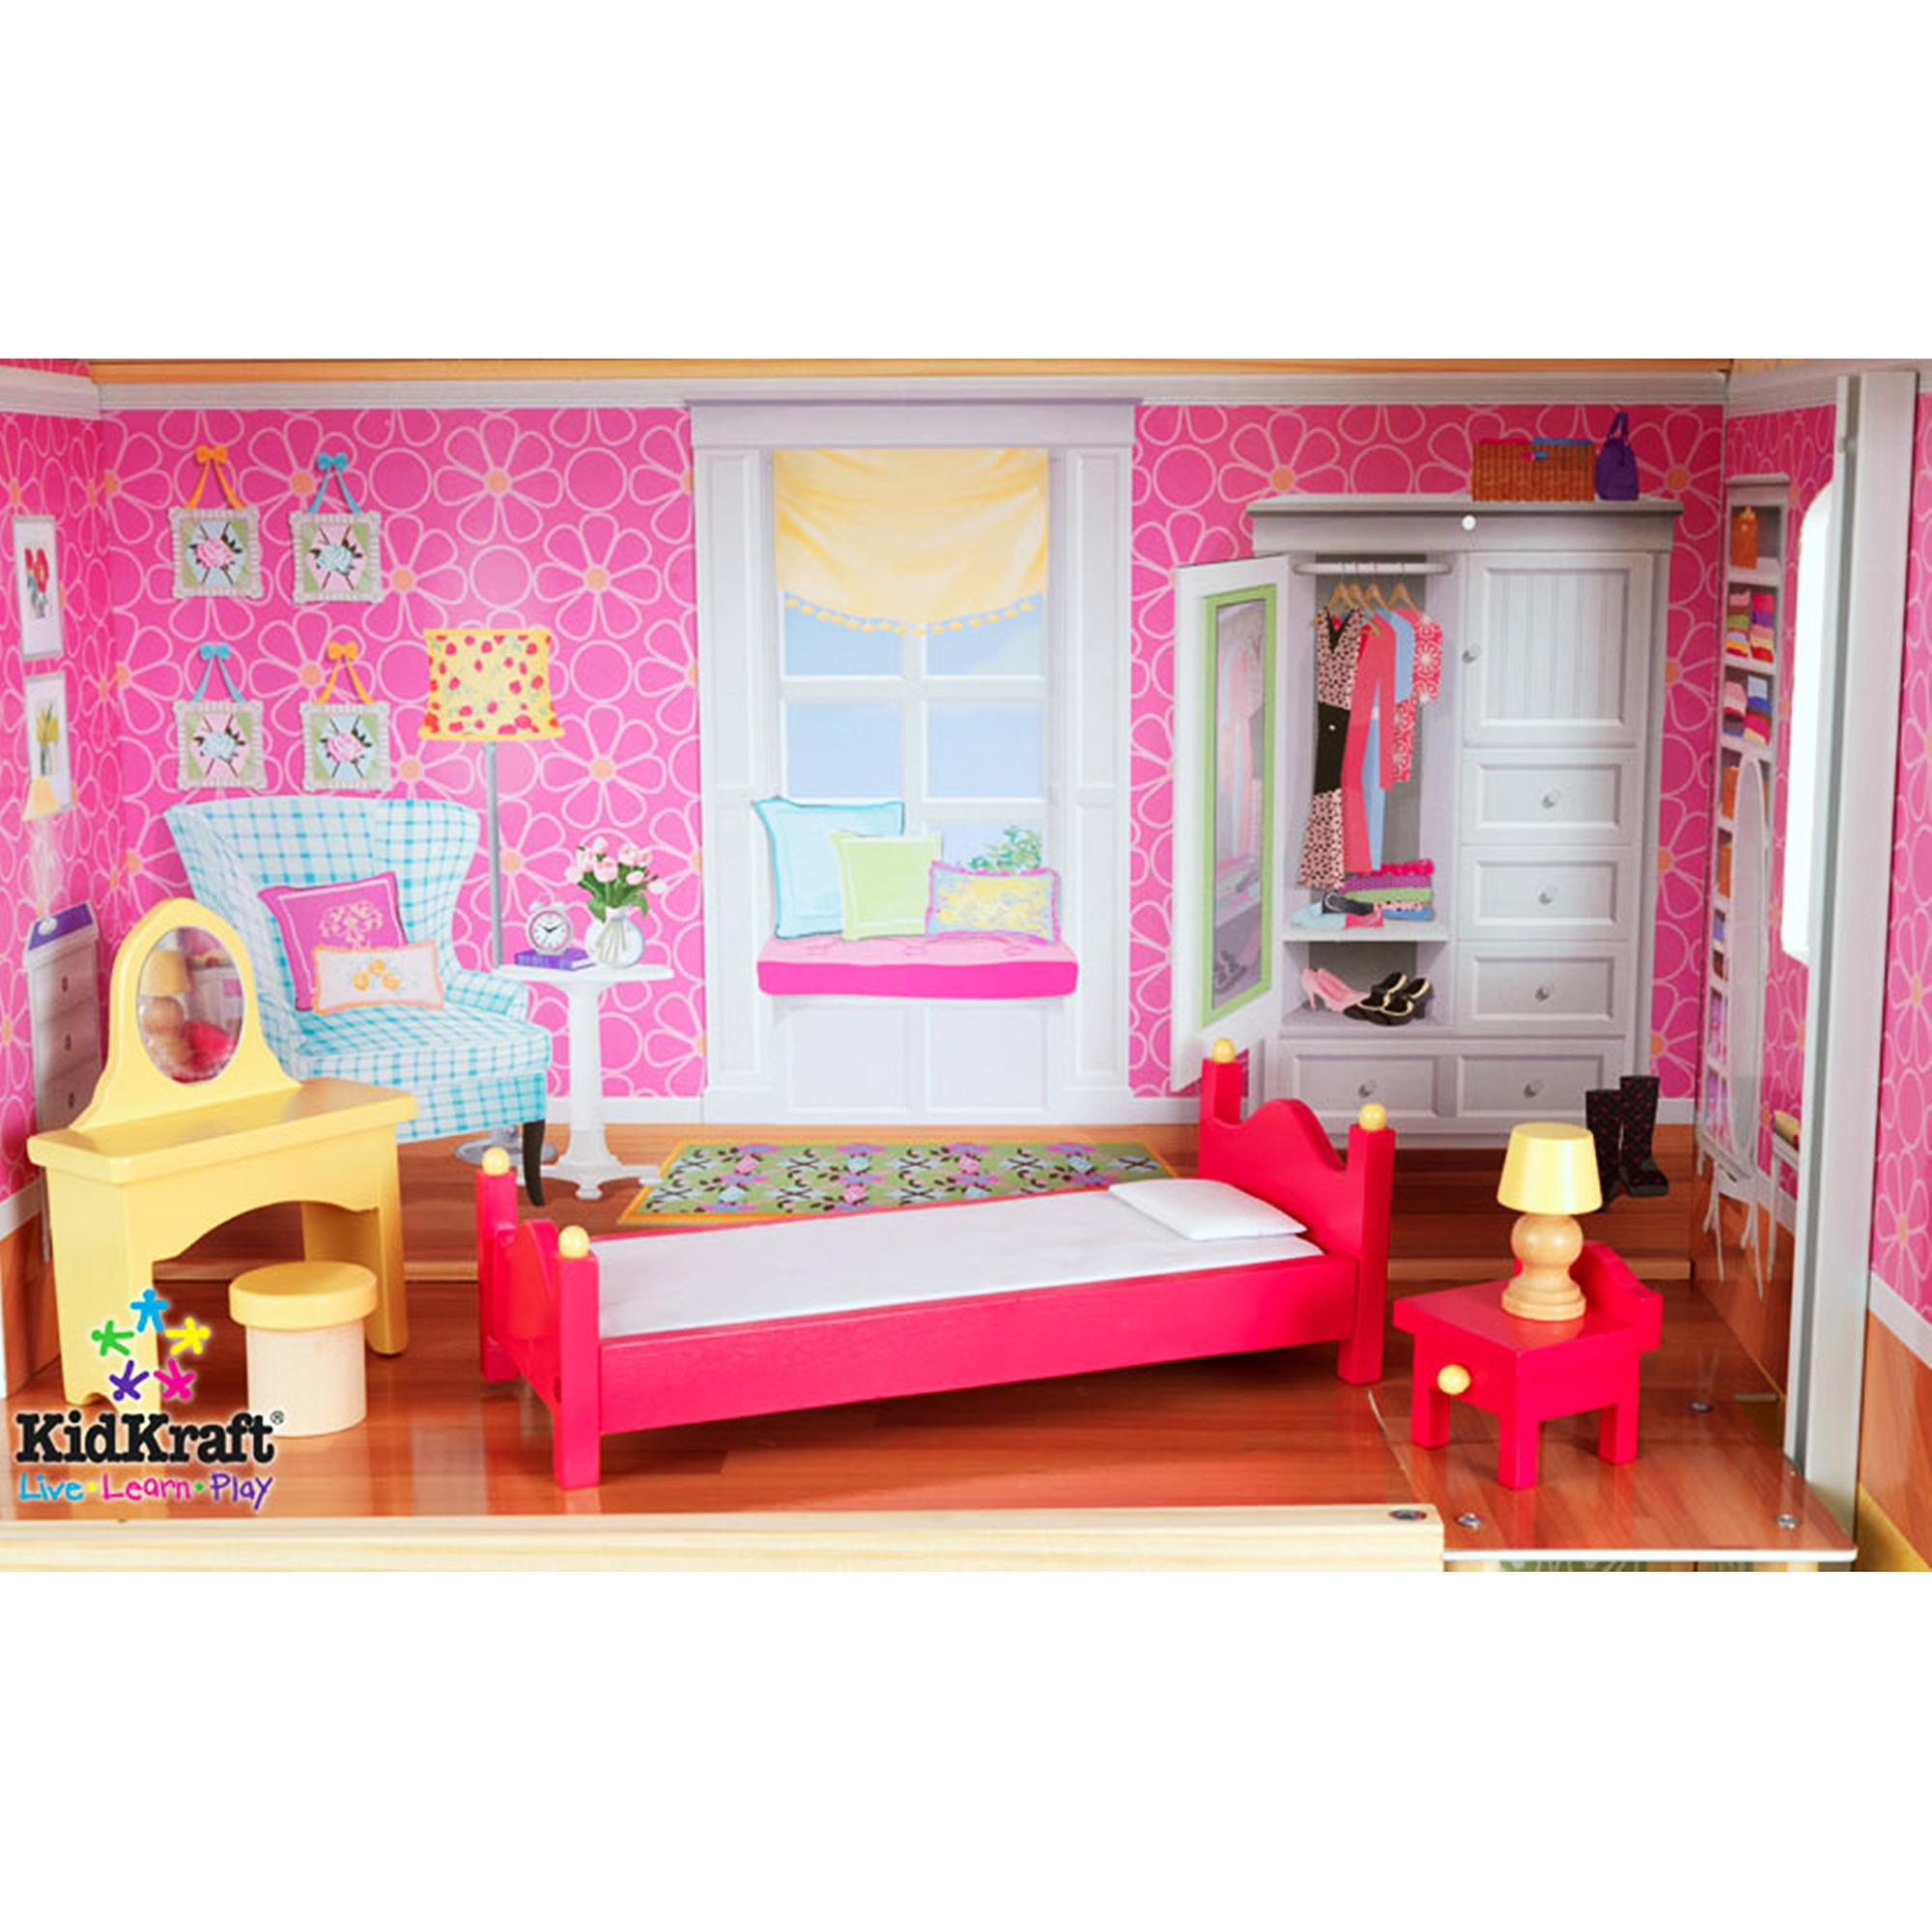 Pretty Kidkraft Majestic Mansion Dollhouse 65252 Made Of Wood In Pink Theme For Kids Room Furniture Ideas